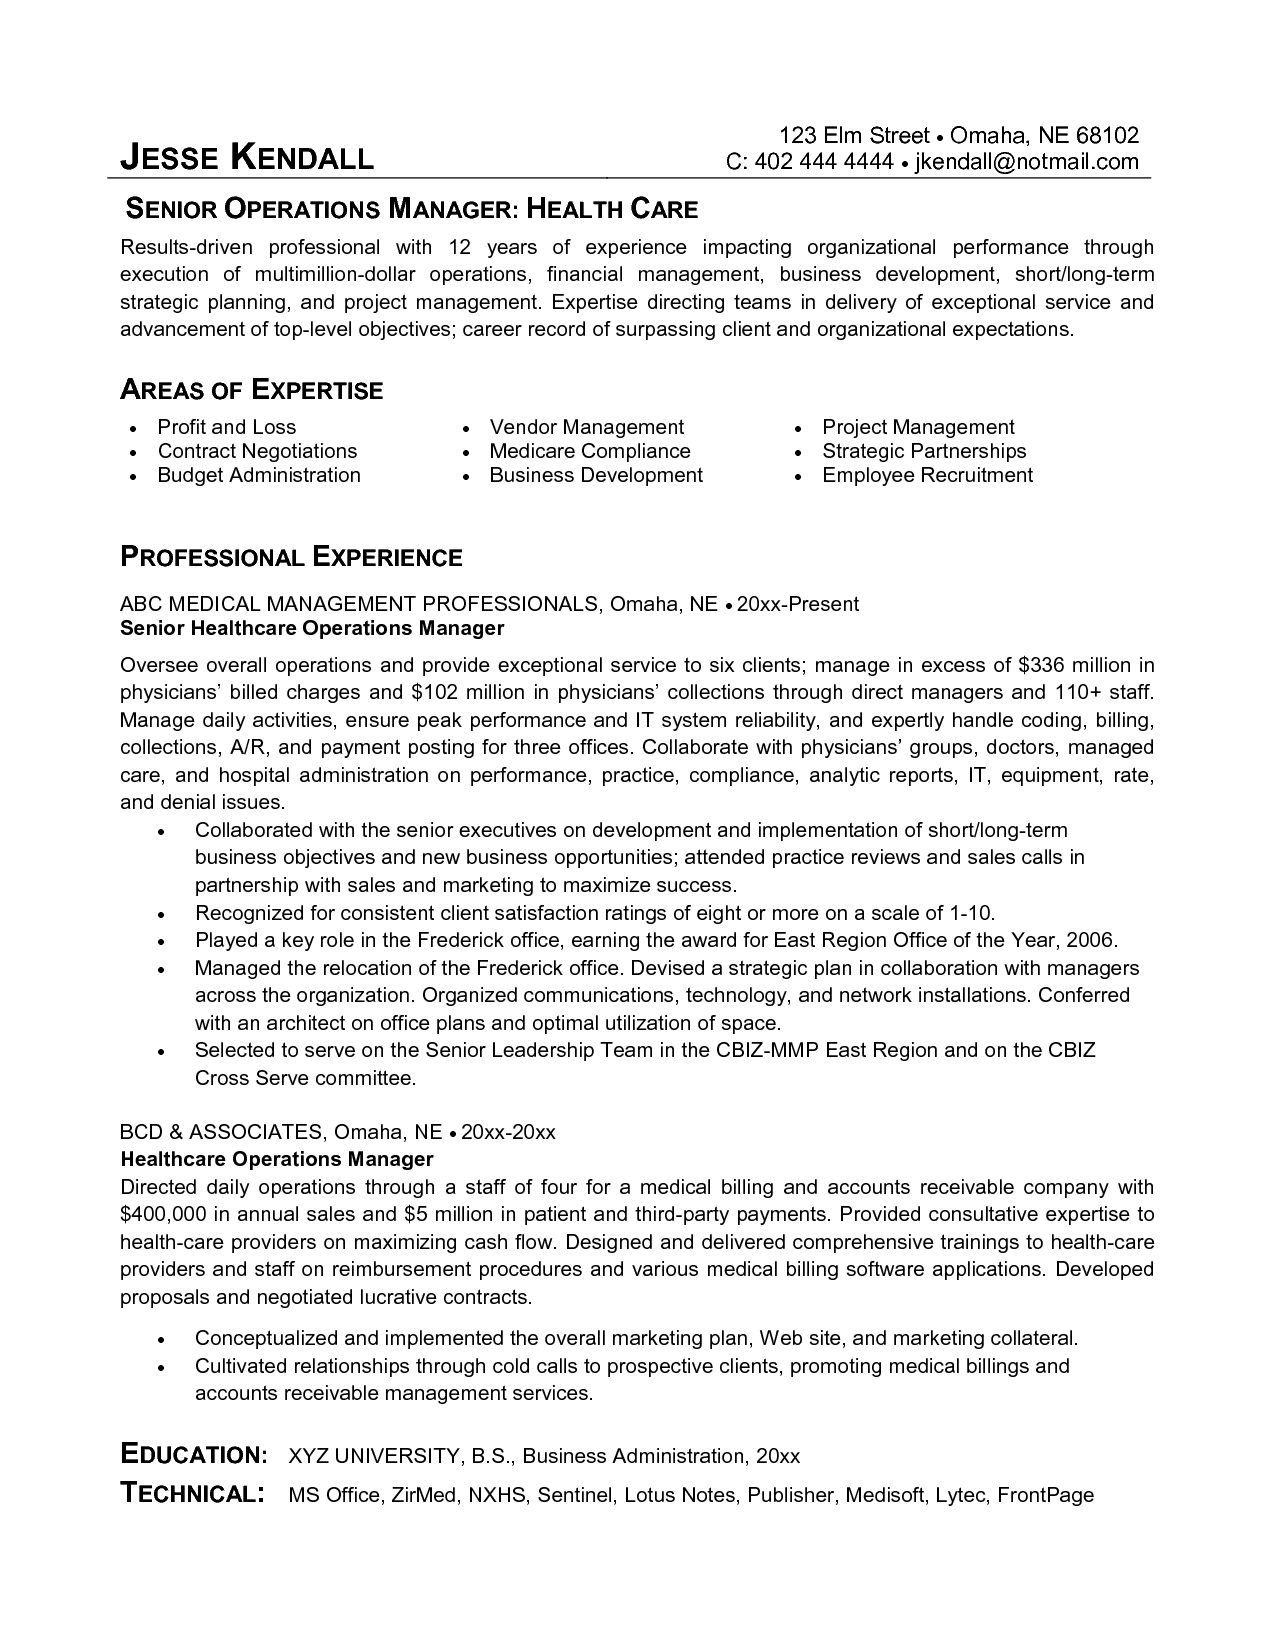 Resume Examples Healthcare Resume Examples Healthcare Management Examples